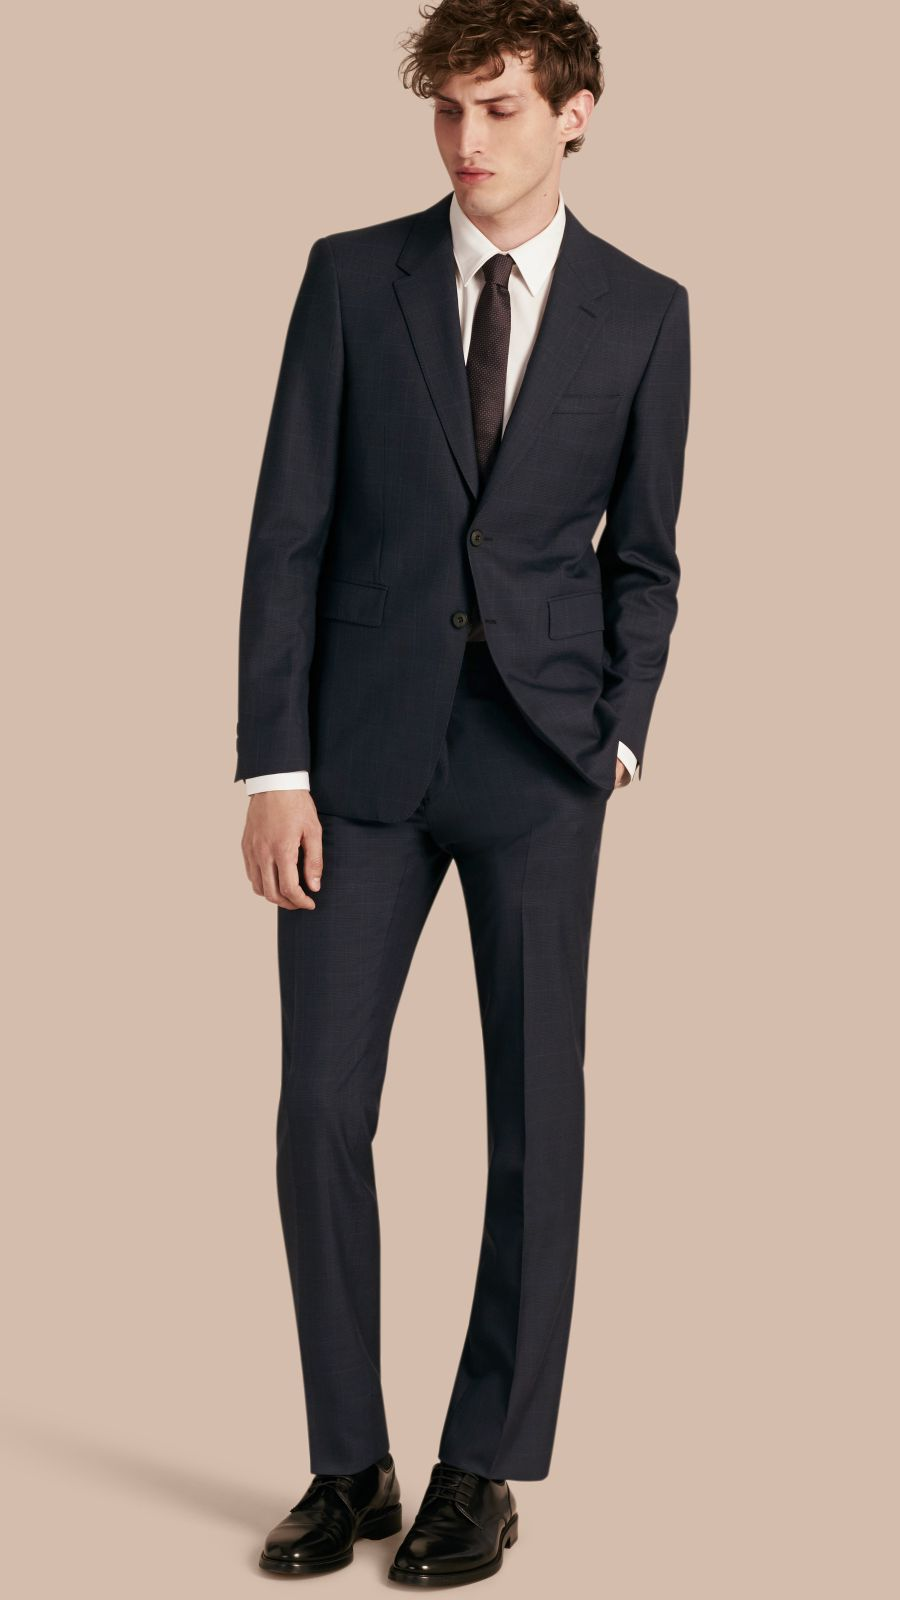 Navy Modern Fit Check Wool Part-canvas Suit Navy - Image 1